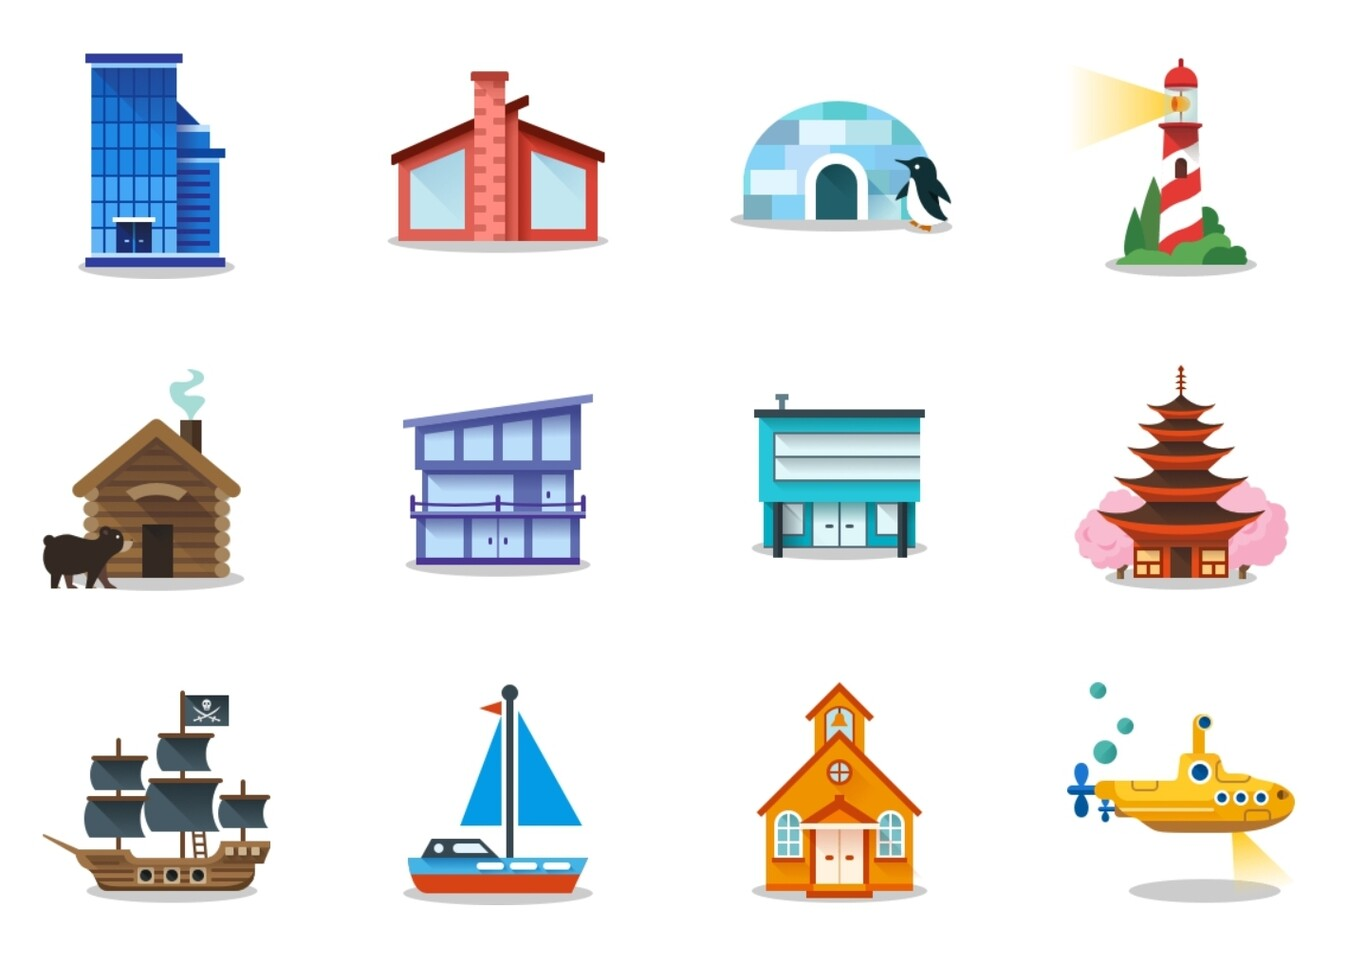 How to customize your home icon on Google Maps?